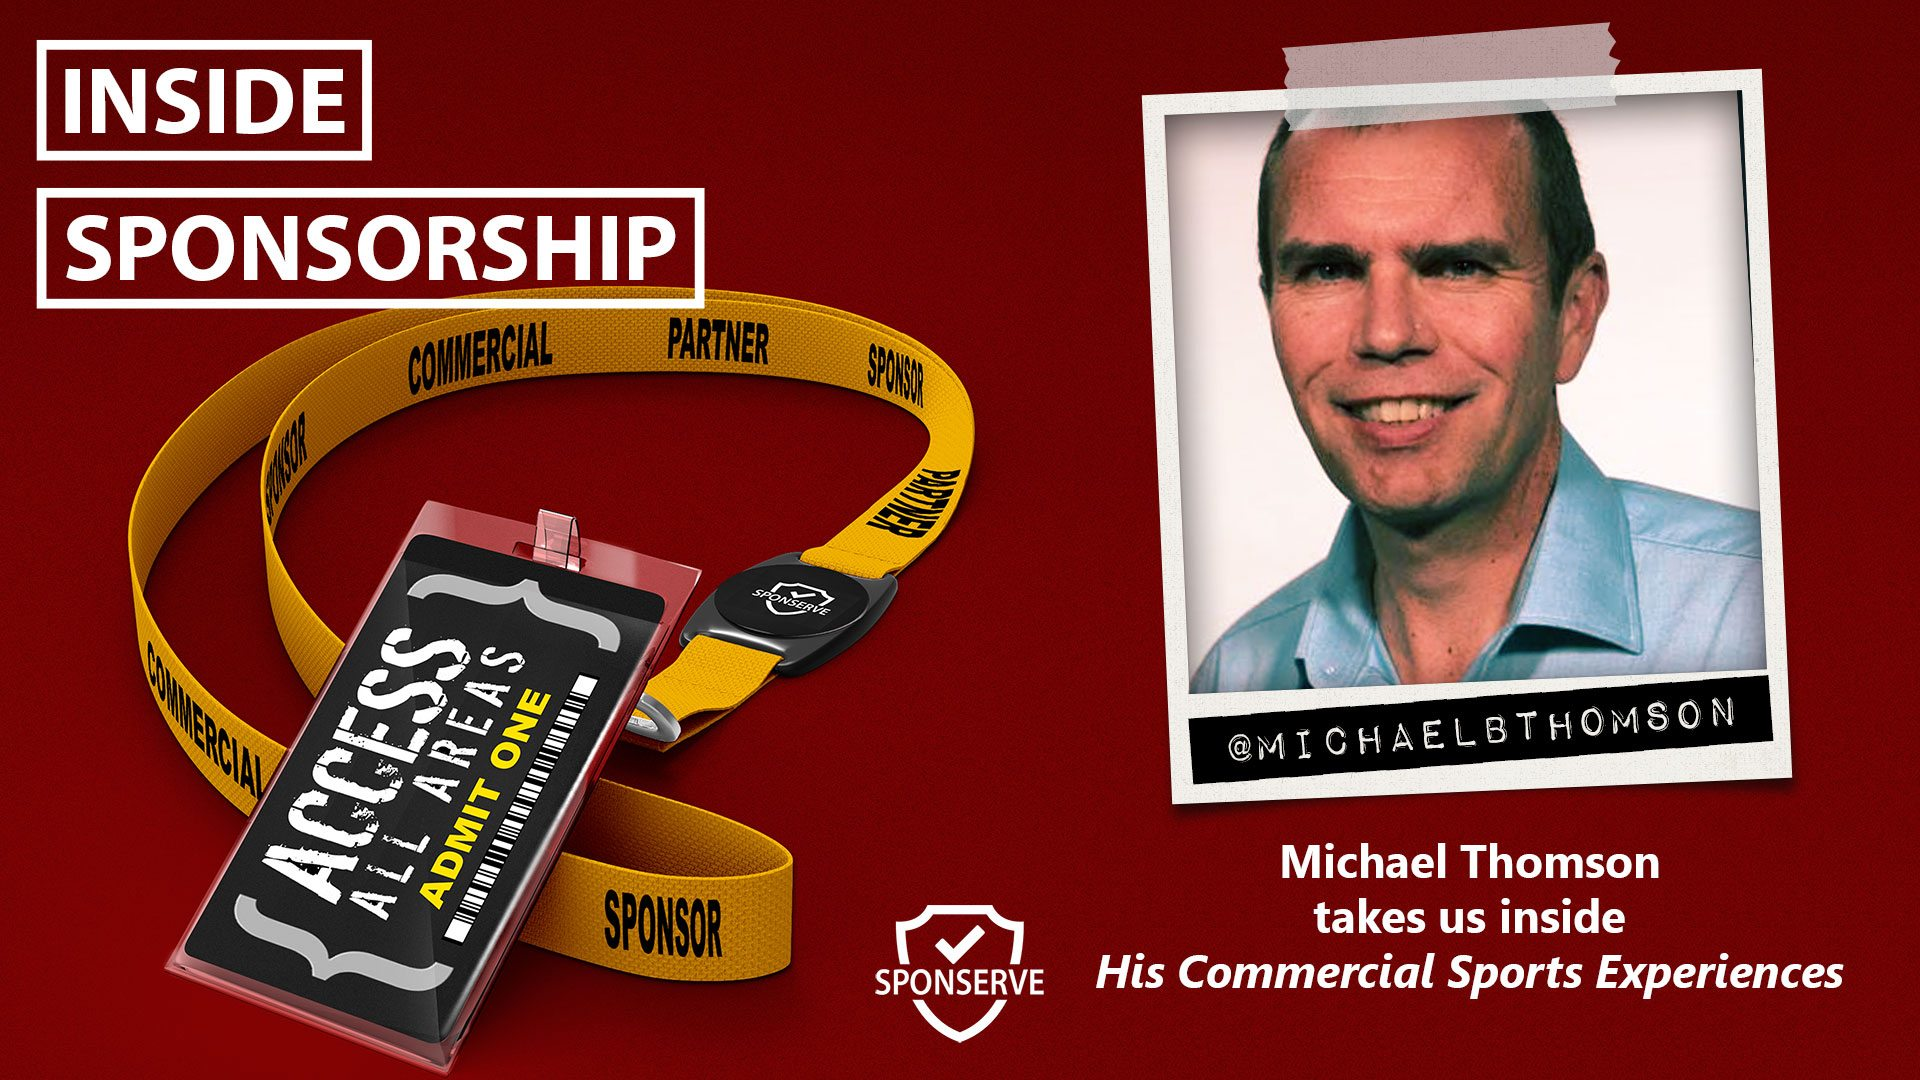 Inside Sponsorship - Michael Thomson